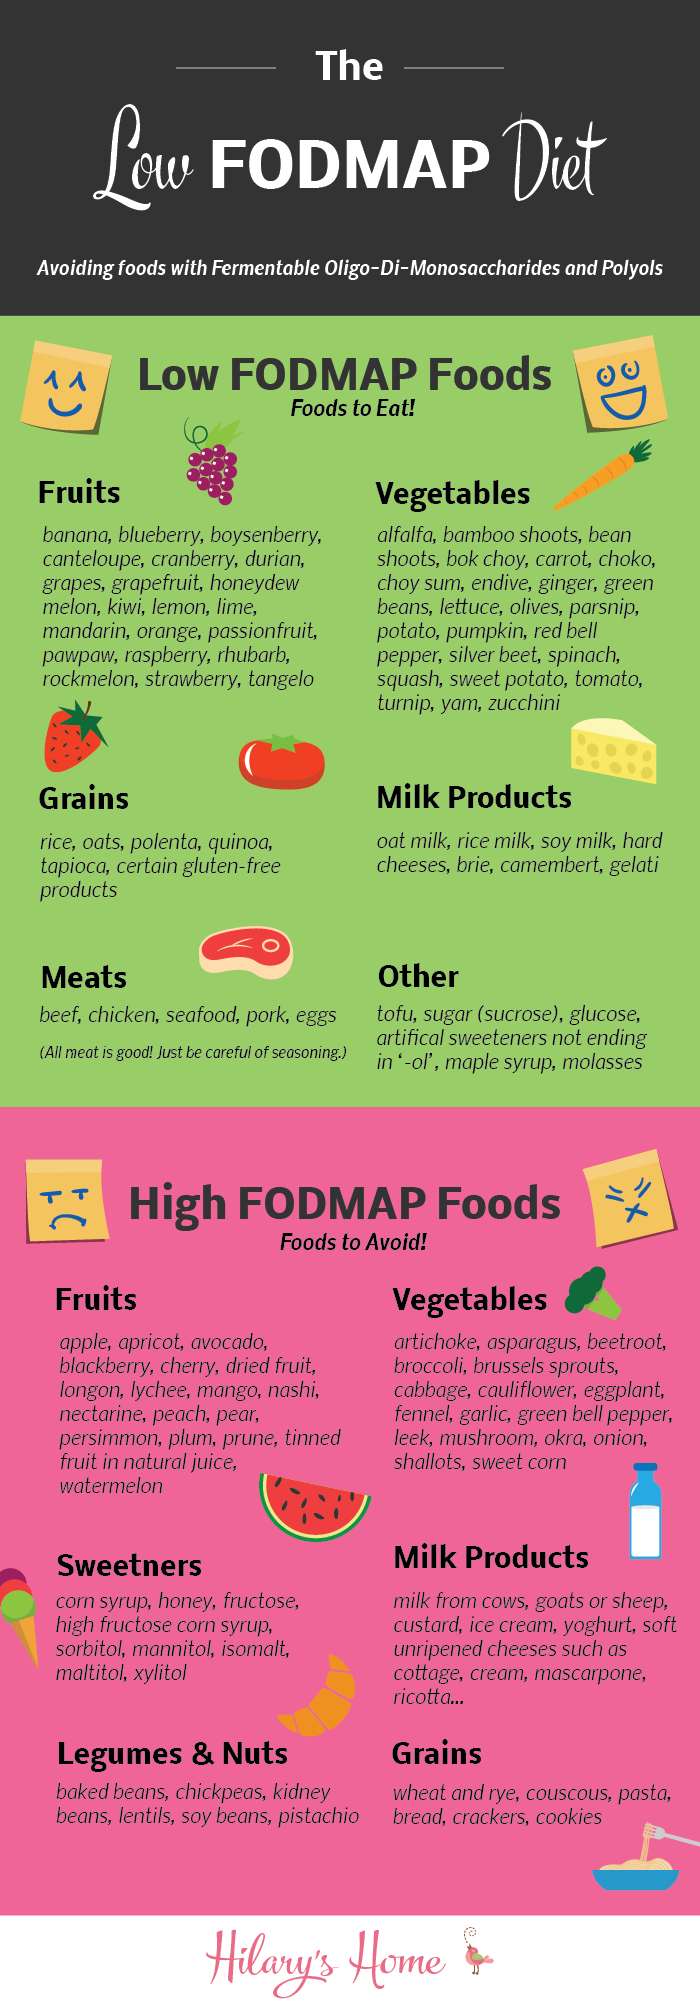 What Is The Low Fodmap T